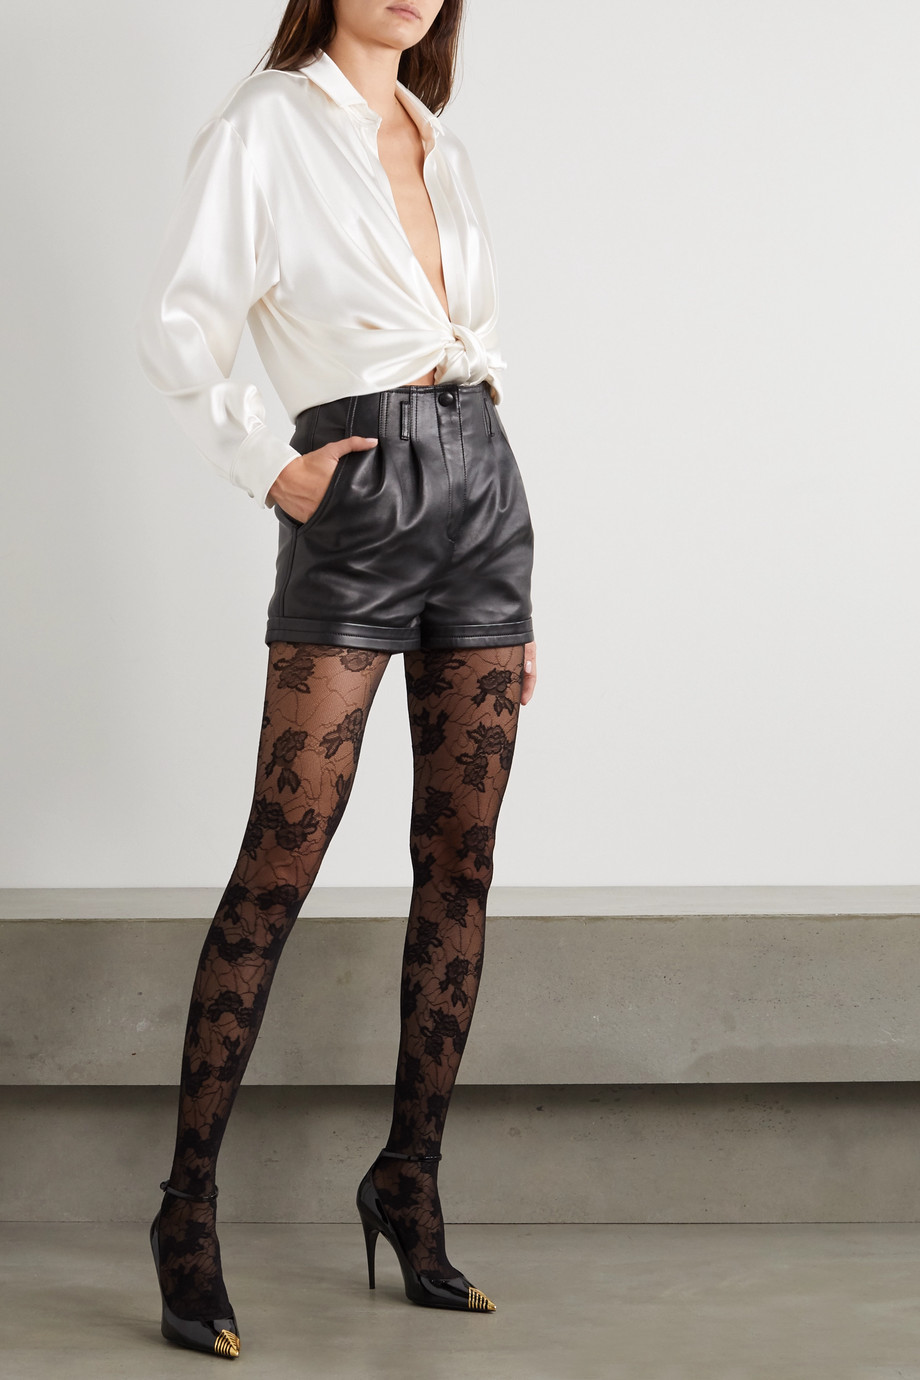 SAINT LAURENT Floral-jacquard tights